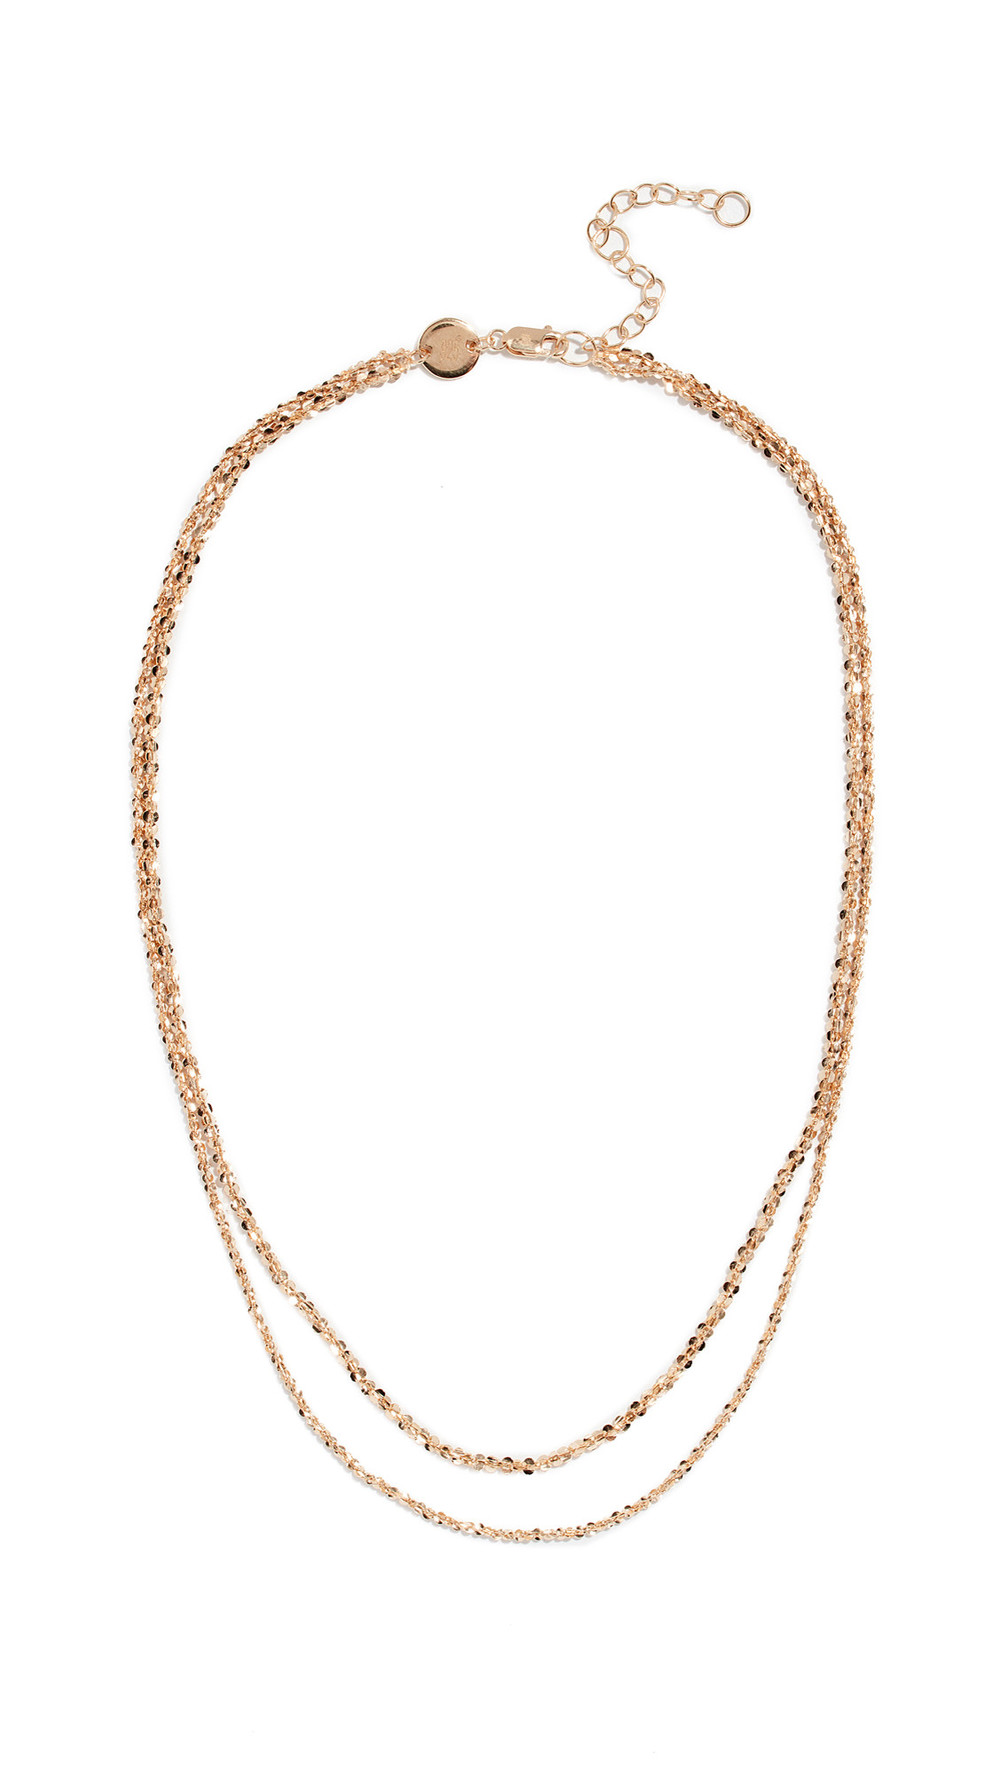 Jennifer Zeuner Jewelry Wes Necklace in gold / yellow